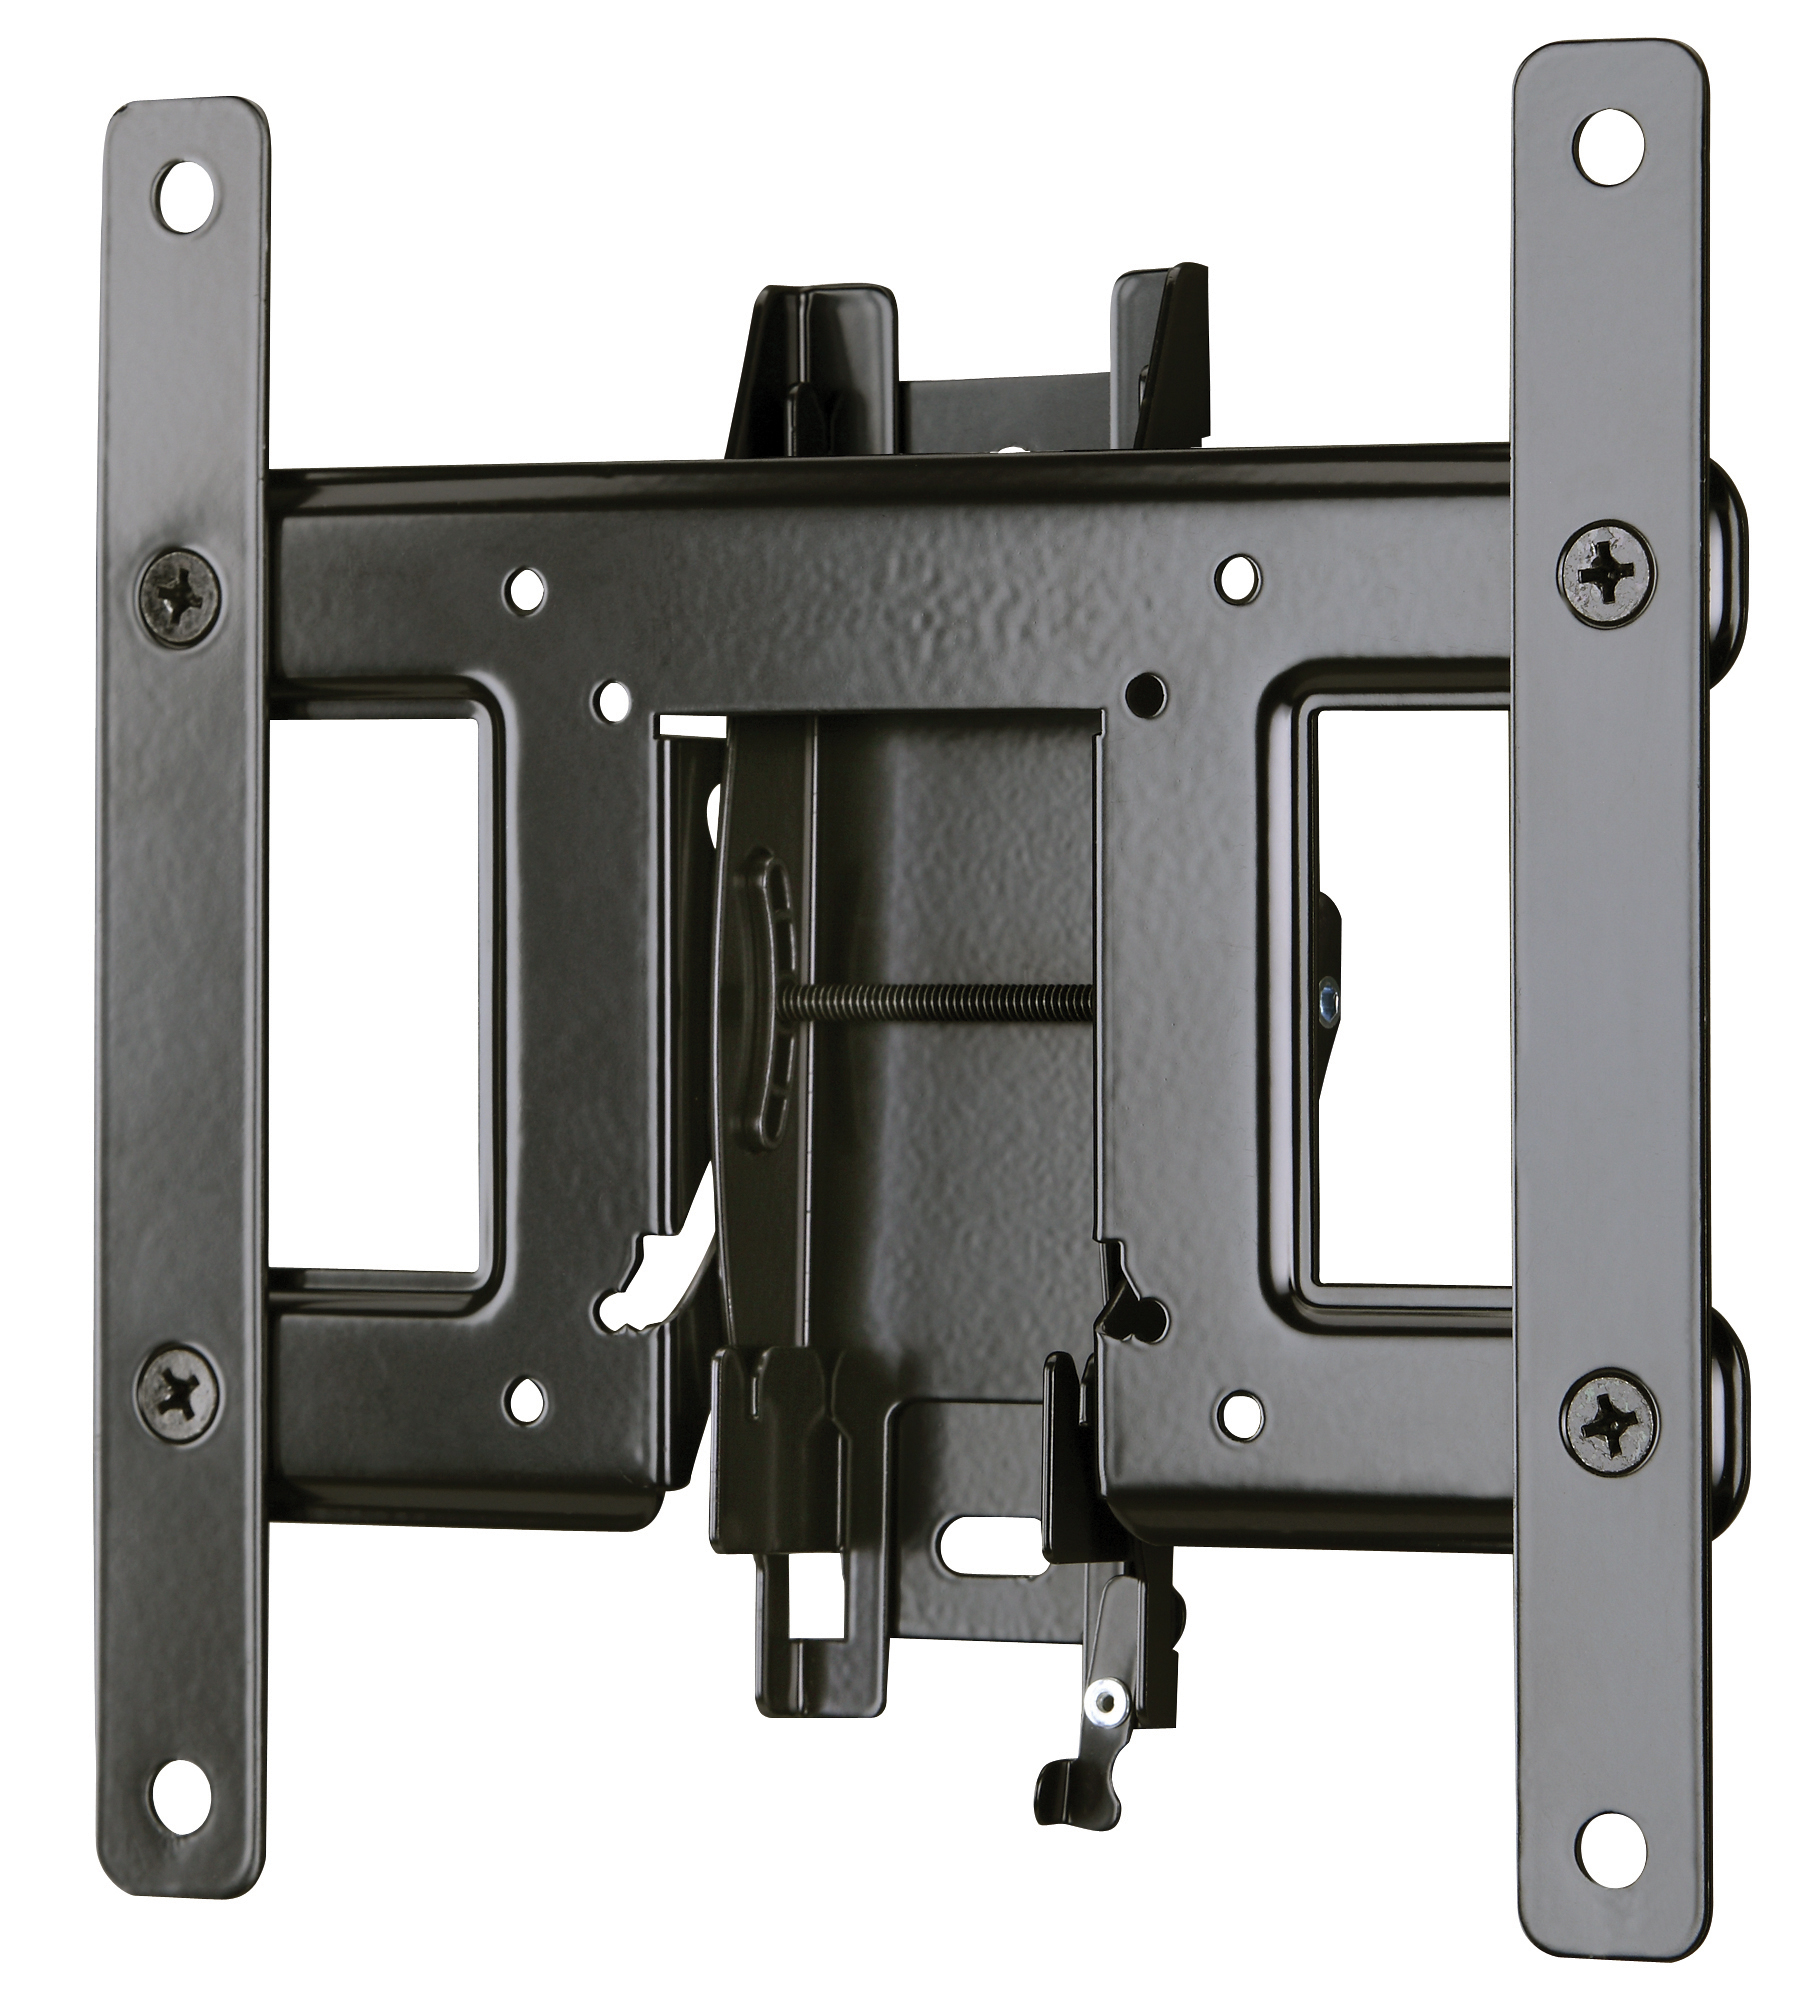 sanus tilt tv wall mount for 13 32 flat screen tvs and monitors ebay. Black Bedroom Furniture Sets. Home Design Ideas